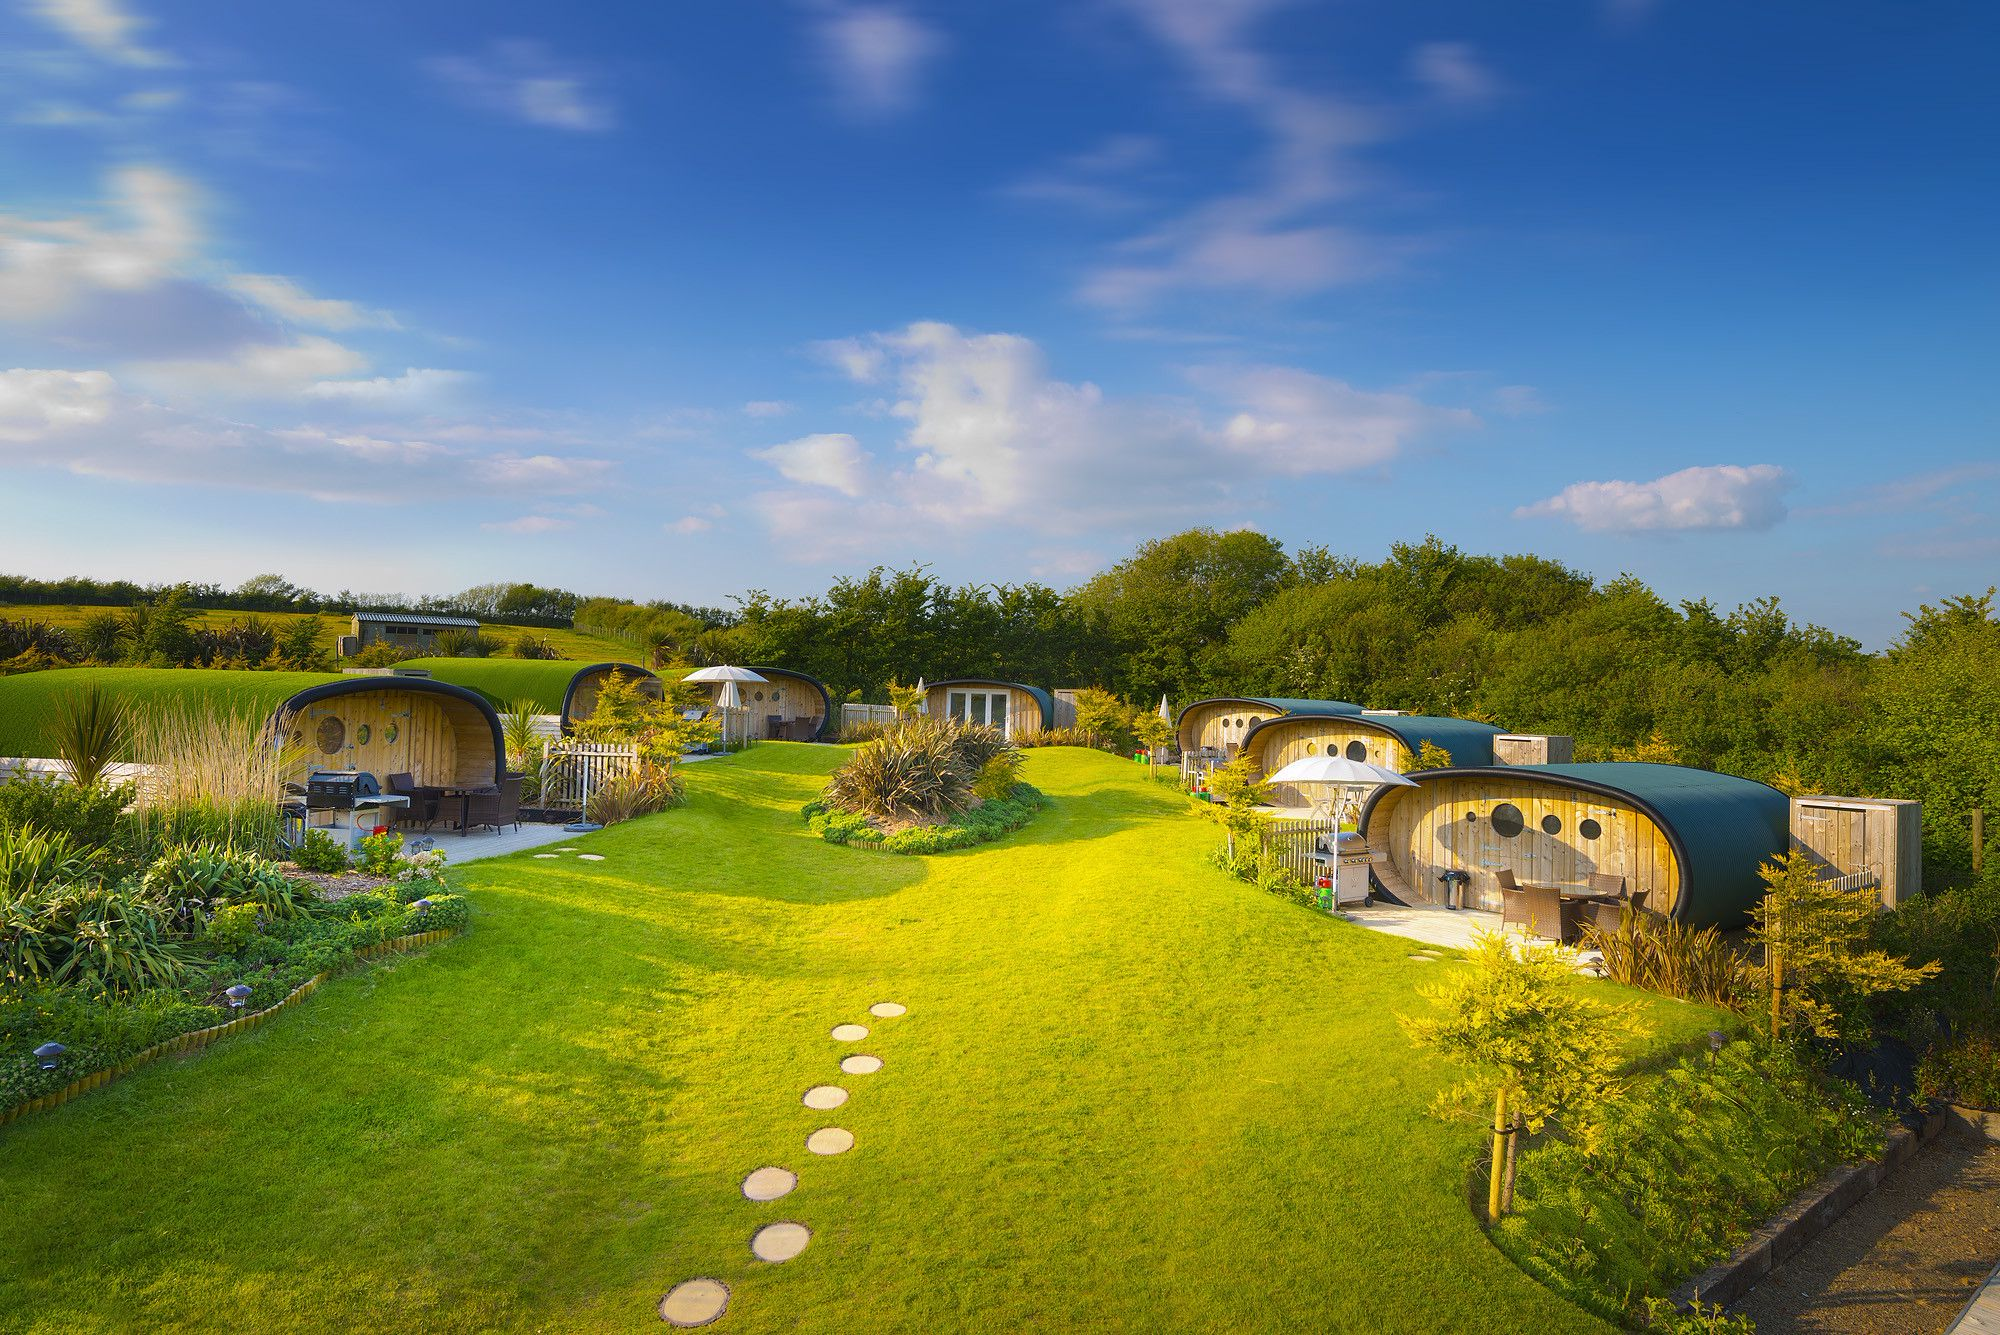 About Glampingly – the curated website showcasing the very best glamping destinations.